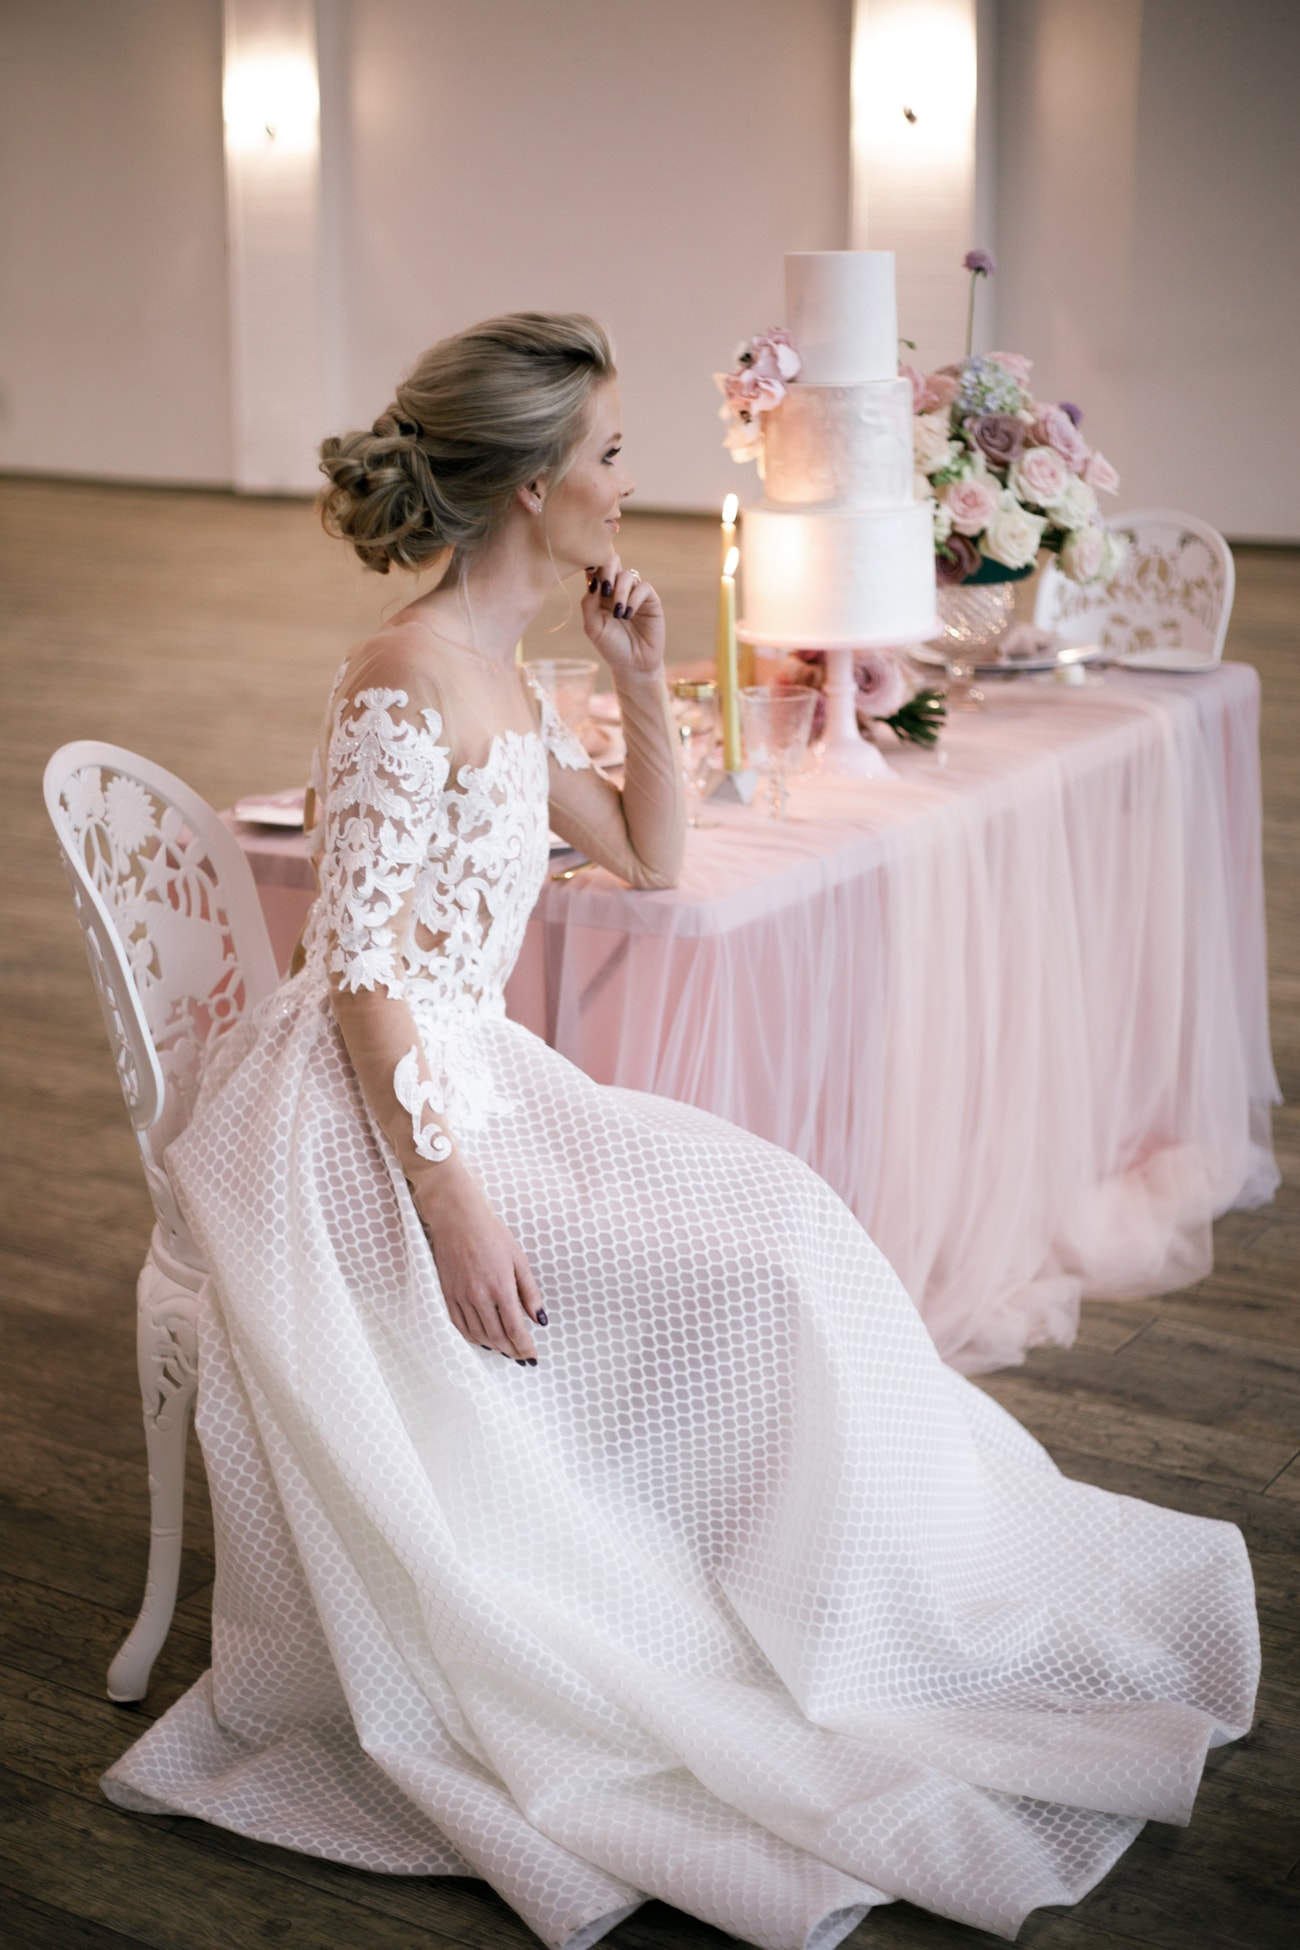 Wedding Dress with Honeycomb Skirt and Lace Sleeve Bodice | Credit: Jessica Notelo (32)